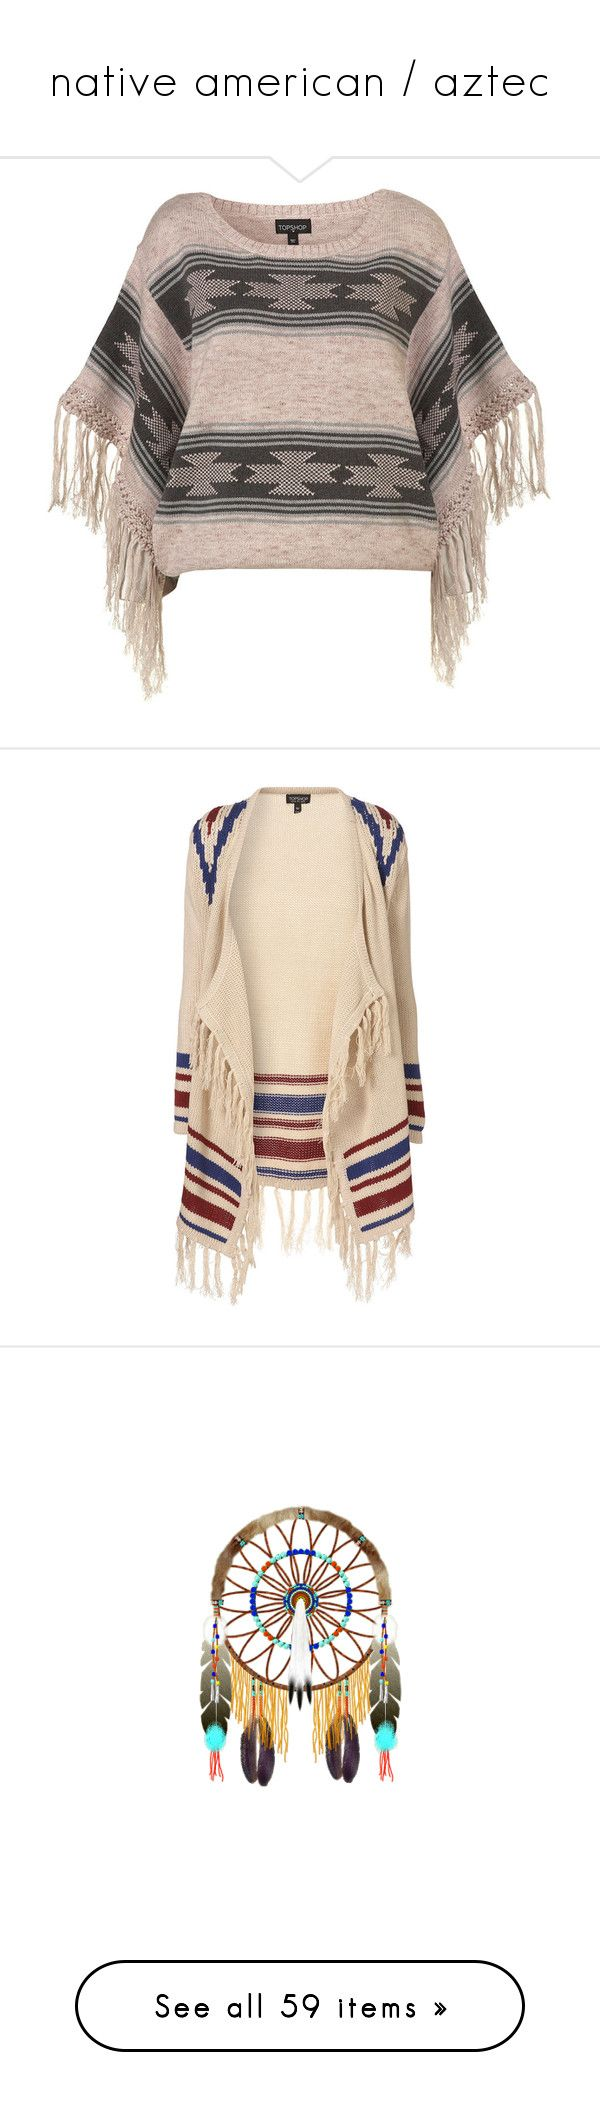 """""""native american / aztec"""" by peacepod ❤ liked on Polyvore featuring tops, shirts, sweaters, blusas, women, brown shirts, cotton shirts, tassel top, shirt top and brown top"""